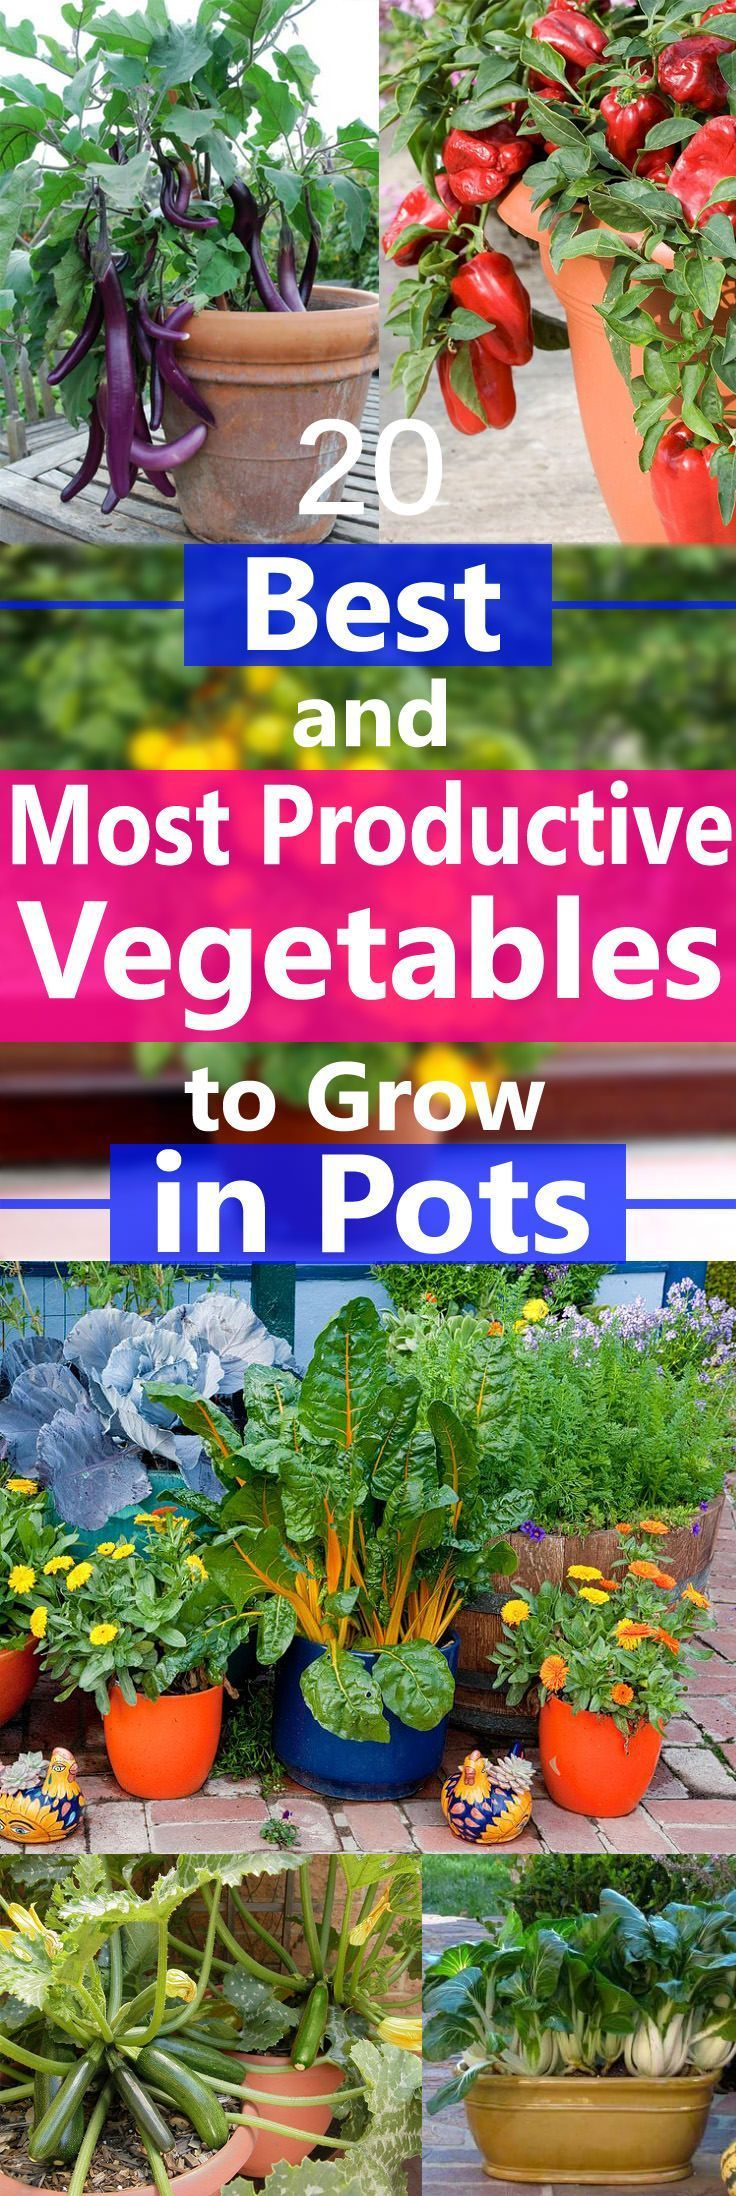 Patio Vegetable Garden Ideas apartment patio garden ideas Try Growing Vegetables In Any Of Southern Patios Decorative Planters See Our Extensive Assortment At